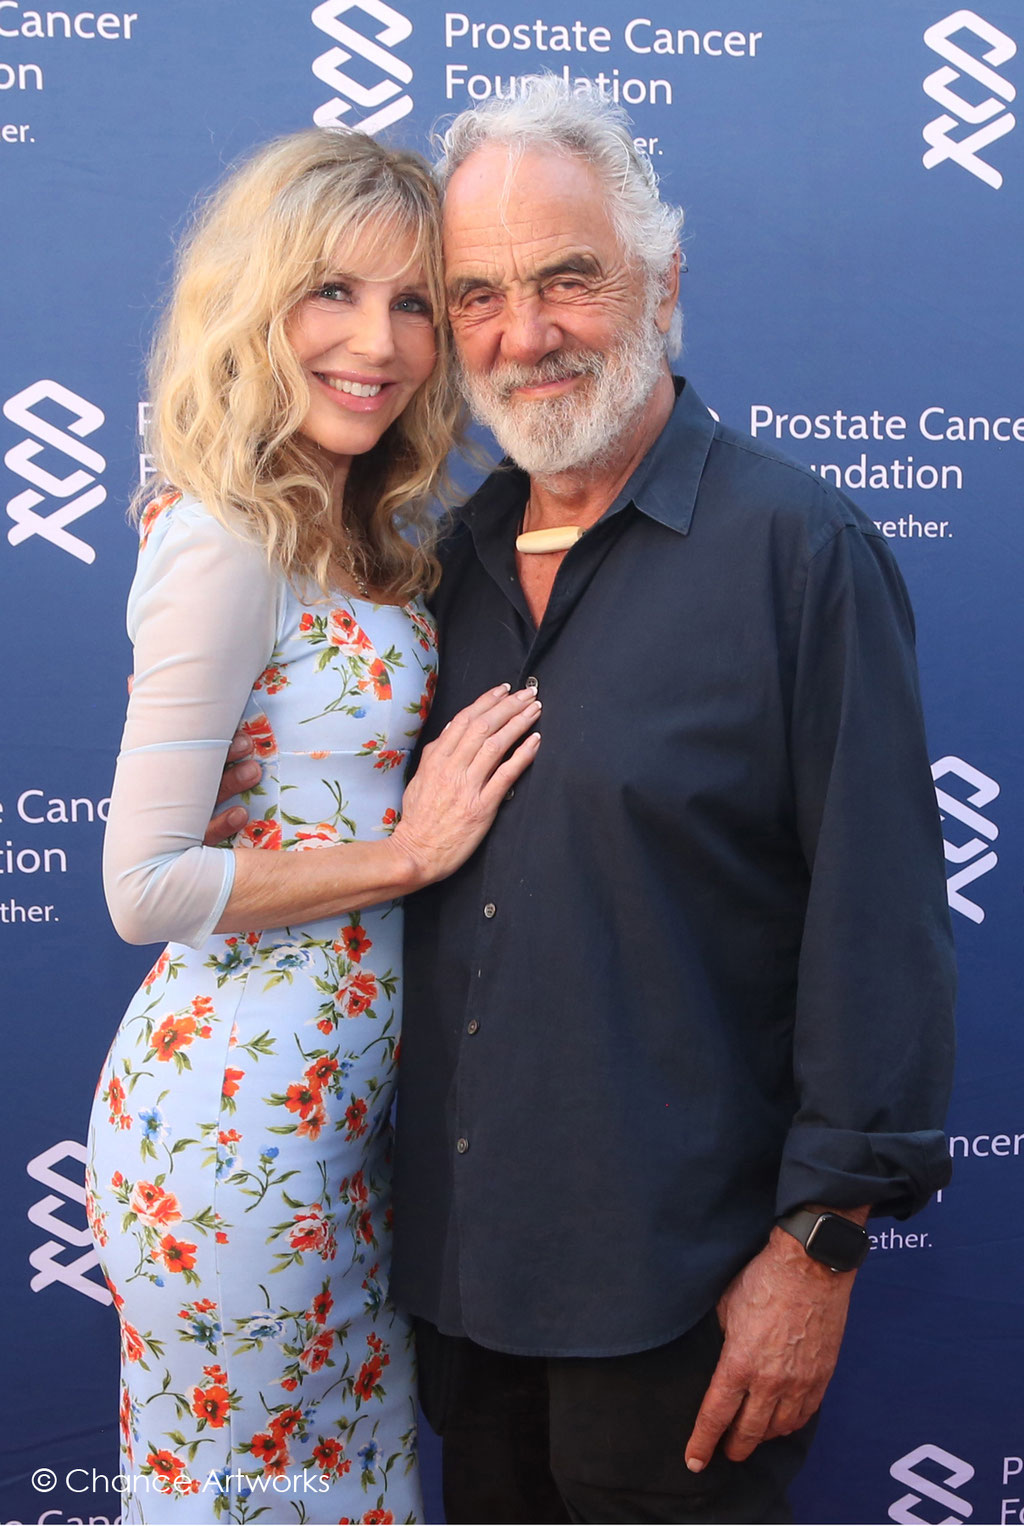 Tommy Chong and Shelby Chong  Step and Repeat at PCF Celebrity Charity Event.